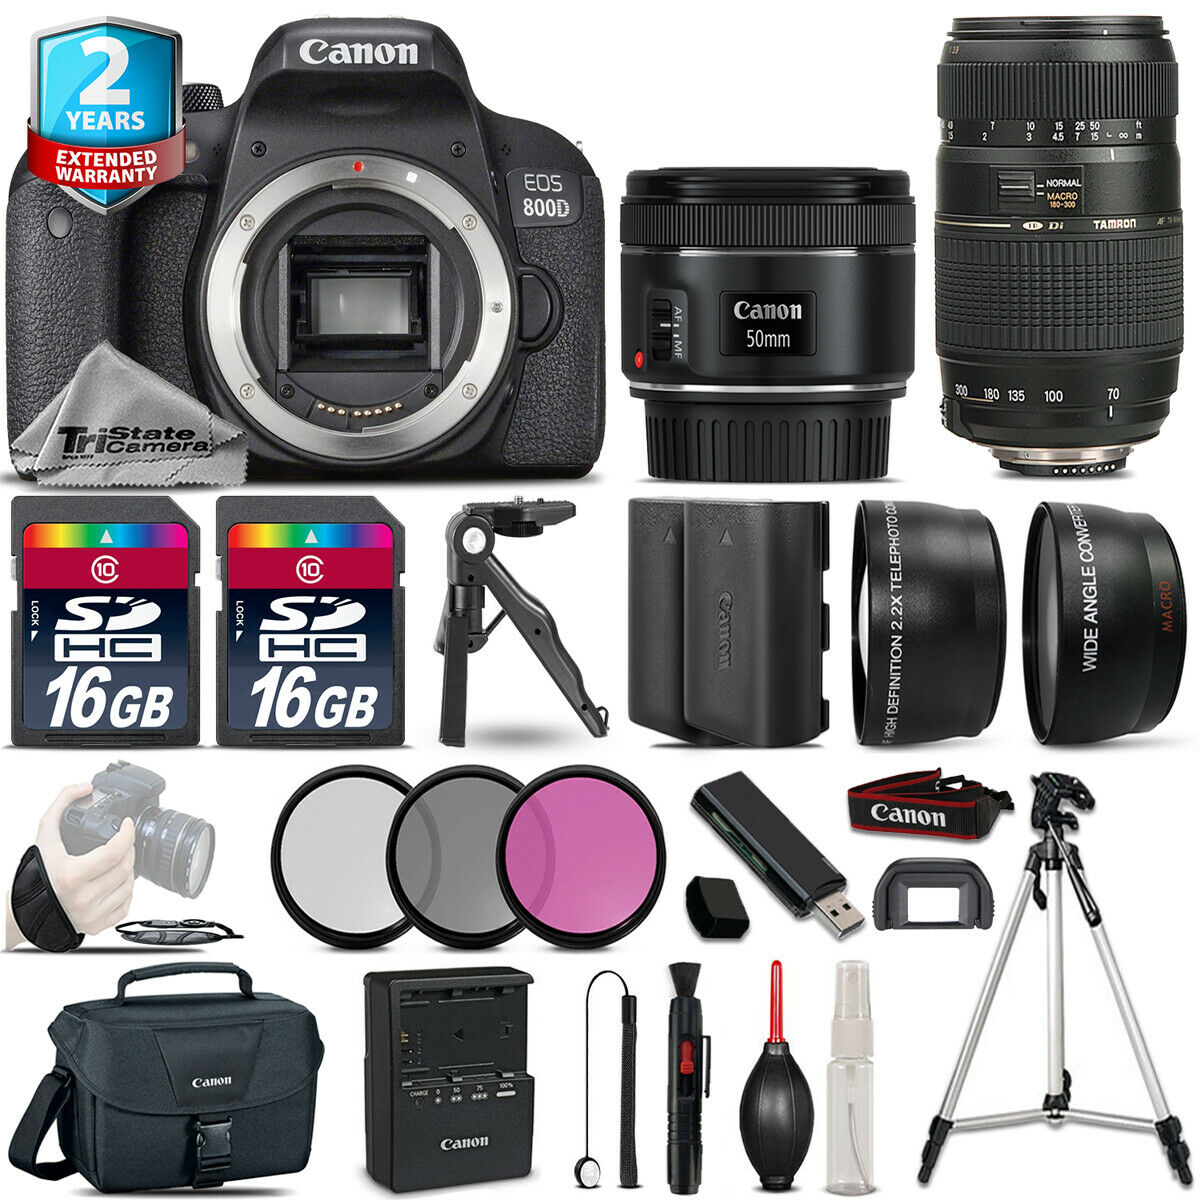 Canon Rebel 800D T7i Camera + 50mm 1.8 STM & 70-300mm +Extra Batt + 2yr Warranty